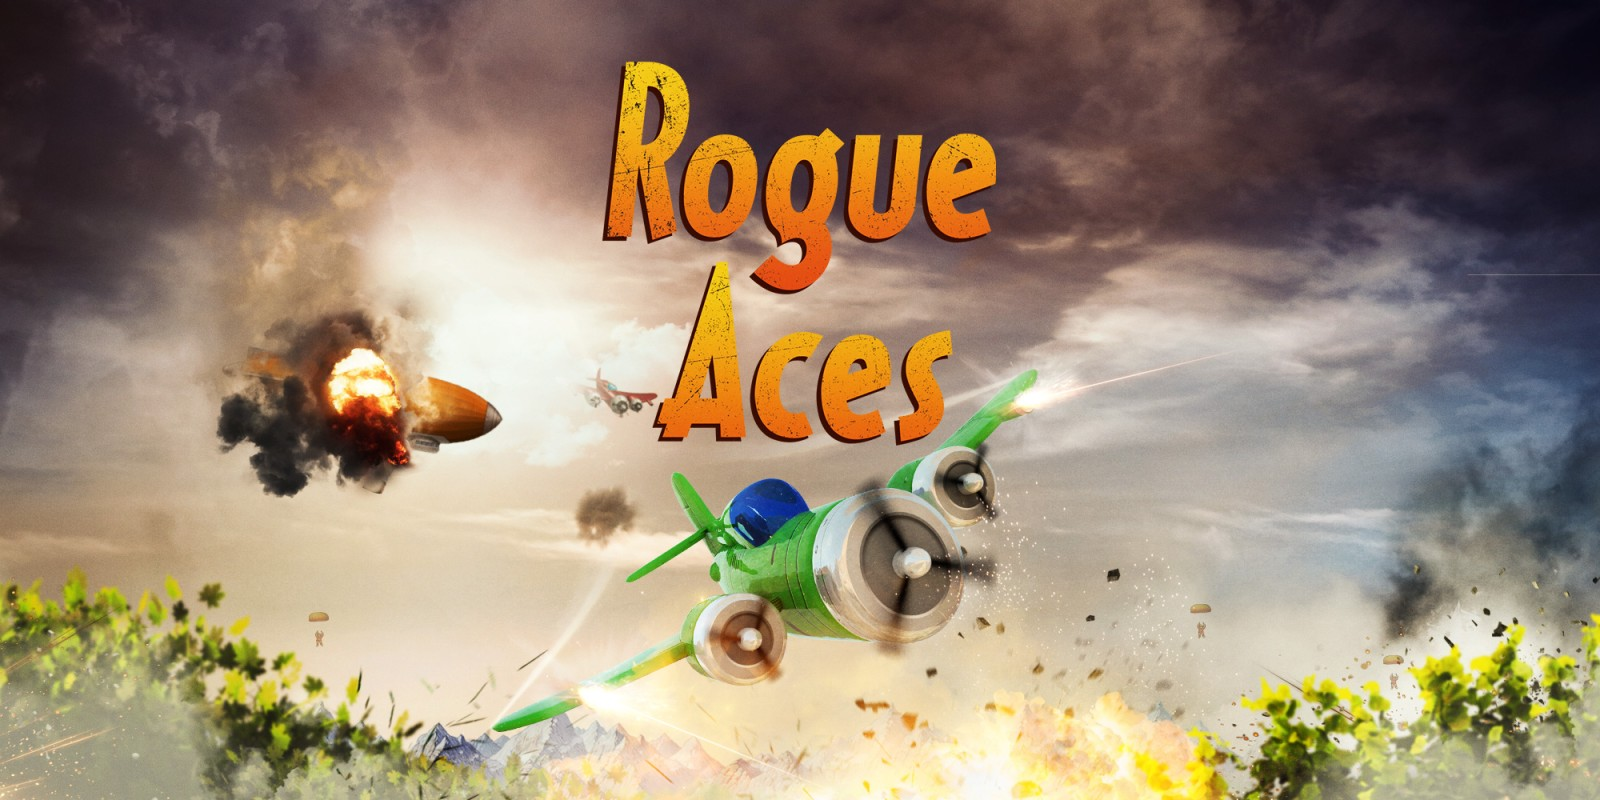 Rogue Aces Programas Descargables Nintendo Switch Juegos Nintendo